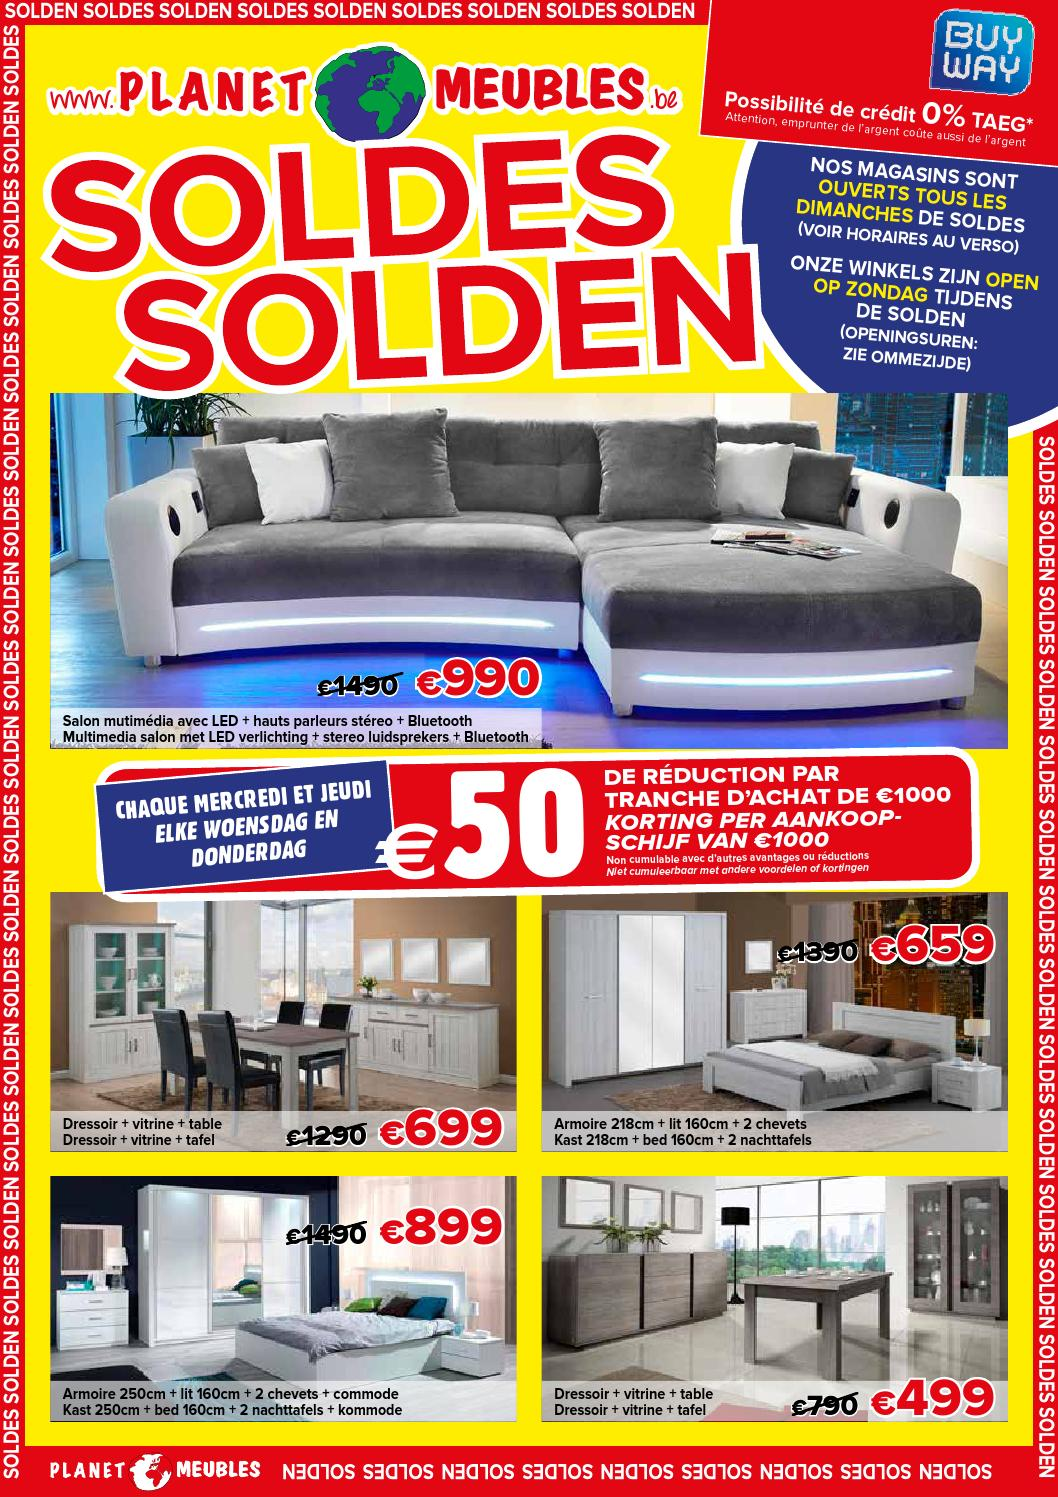 Planet meubles soldes 2016 by vasco interieur issuu for Soldes ameublement